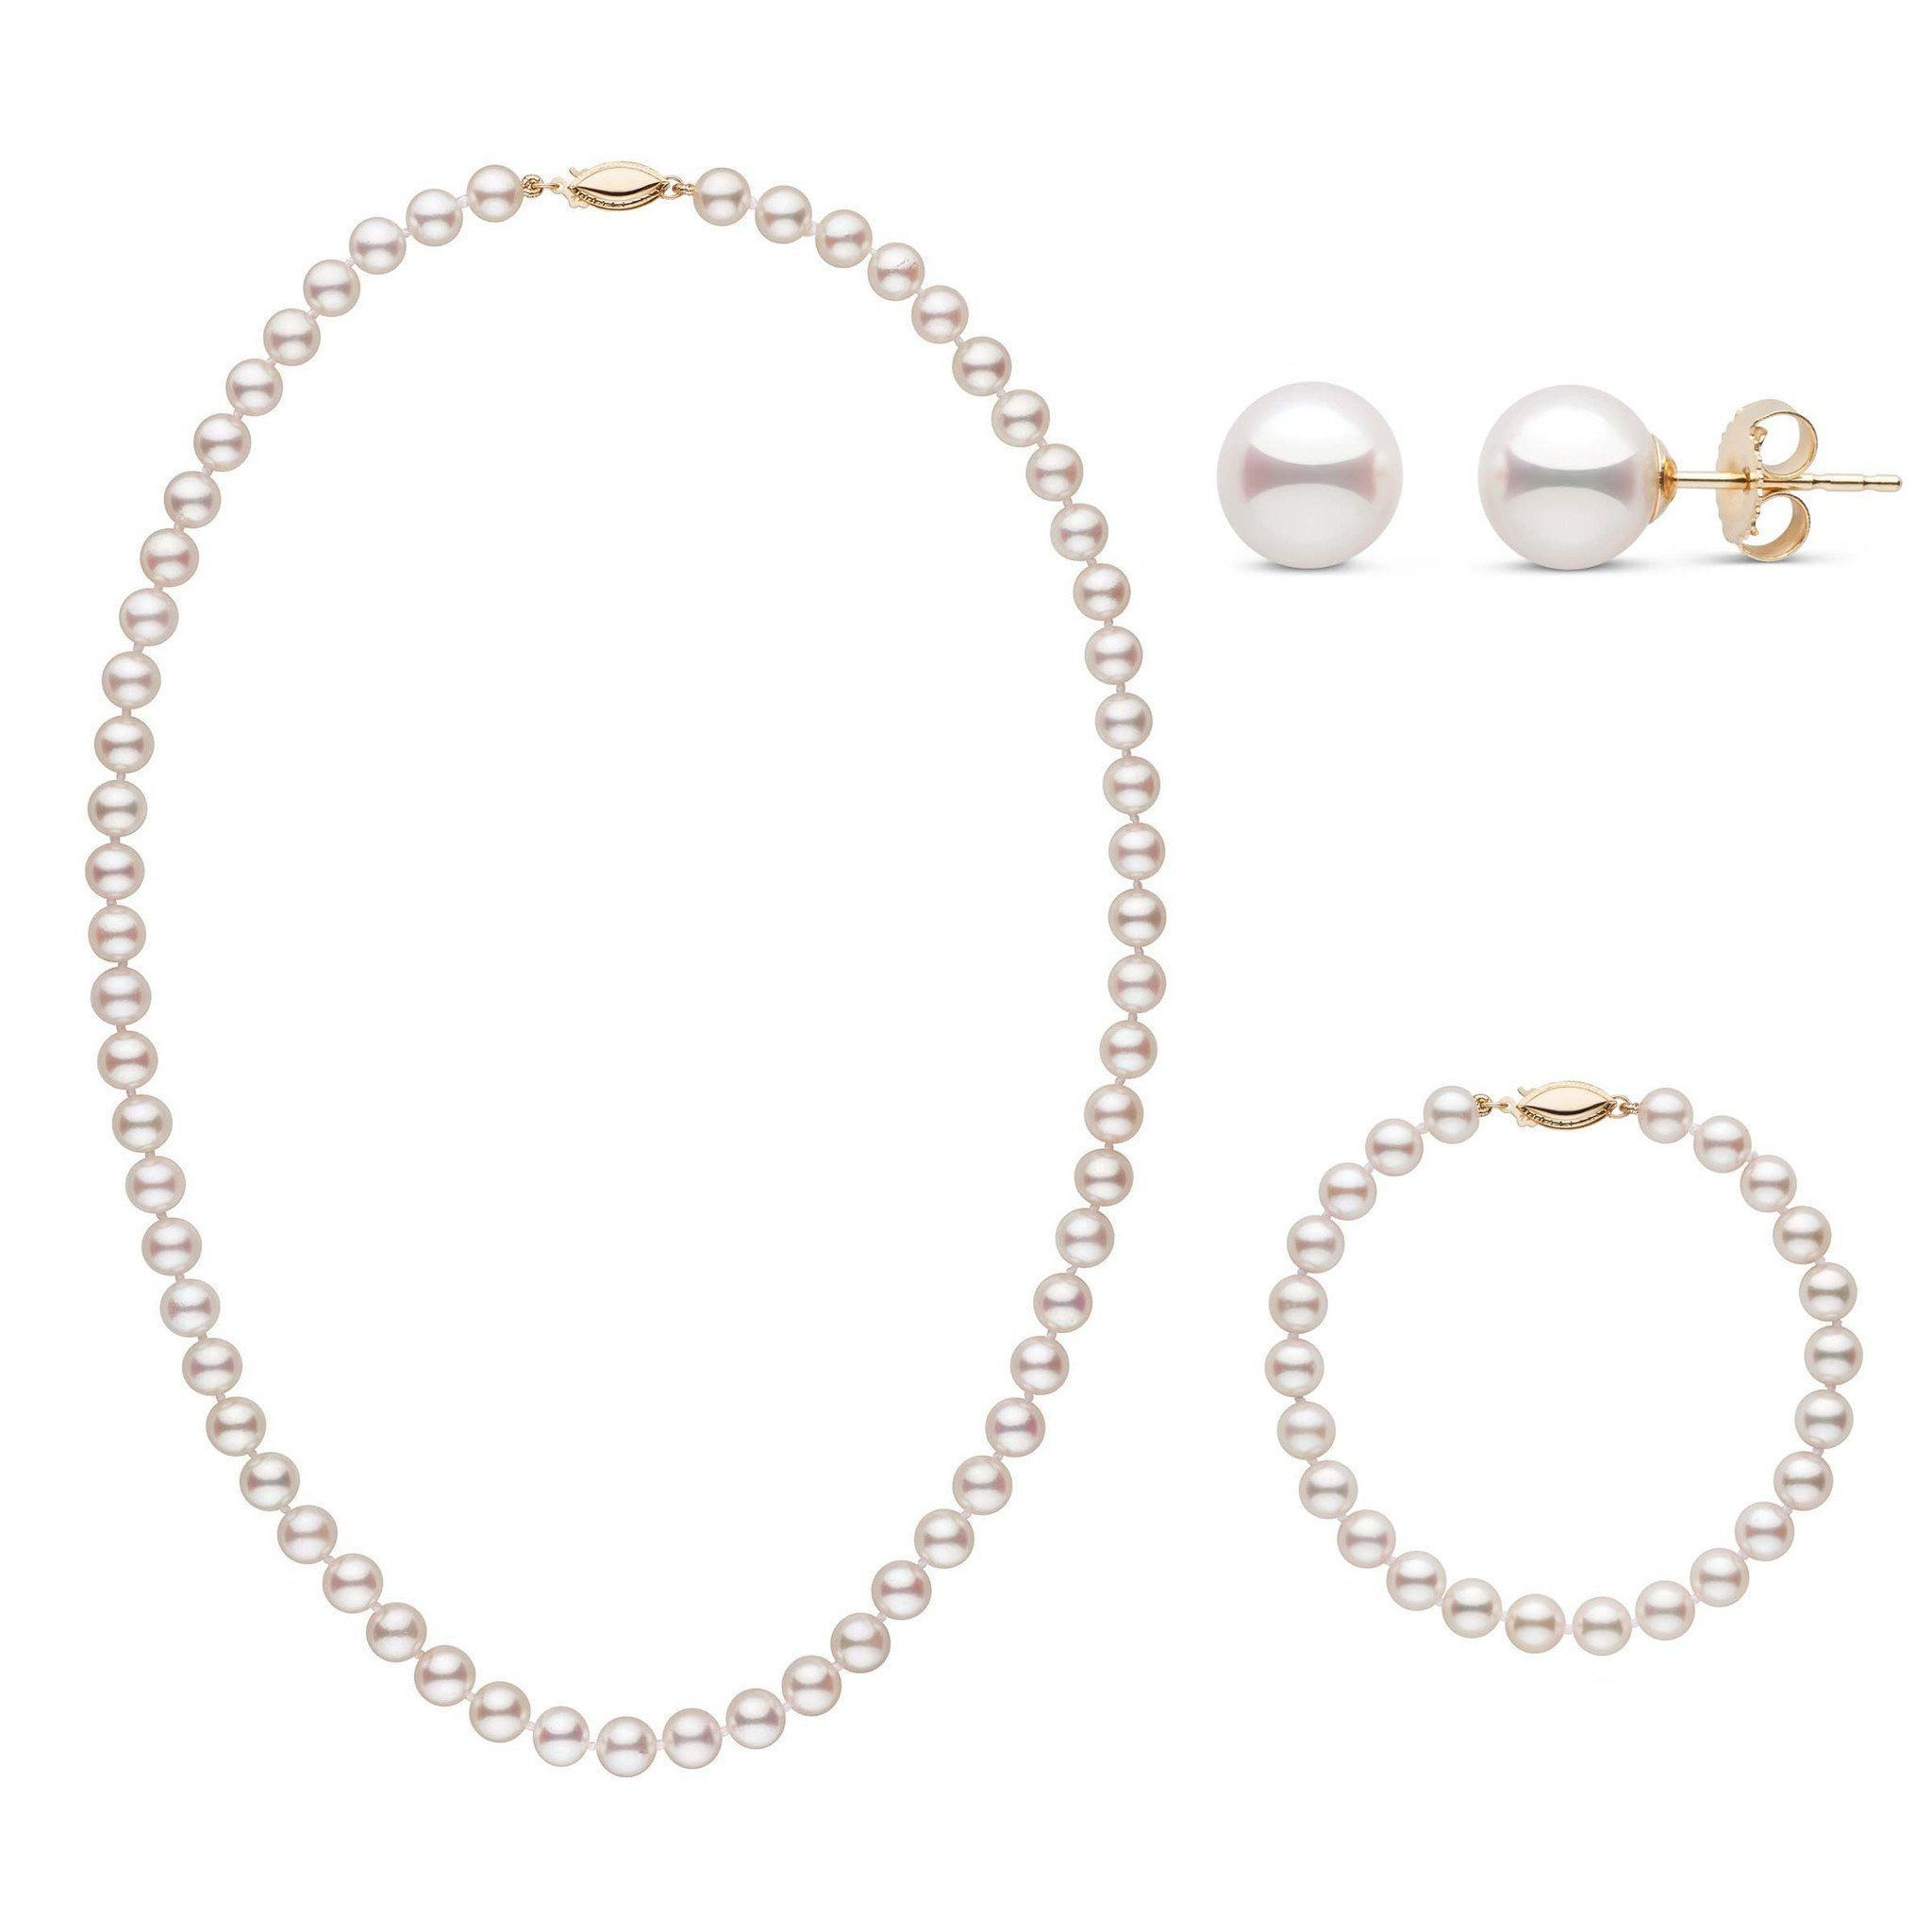 18 Inch 3 Piece Set of 6.5-7.0 mm AAA White Akoya Pearls